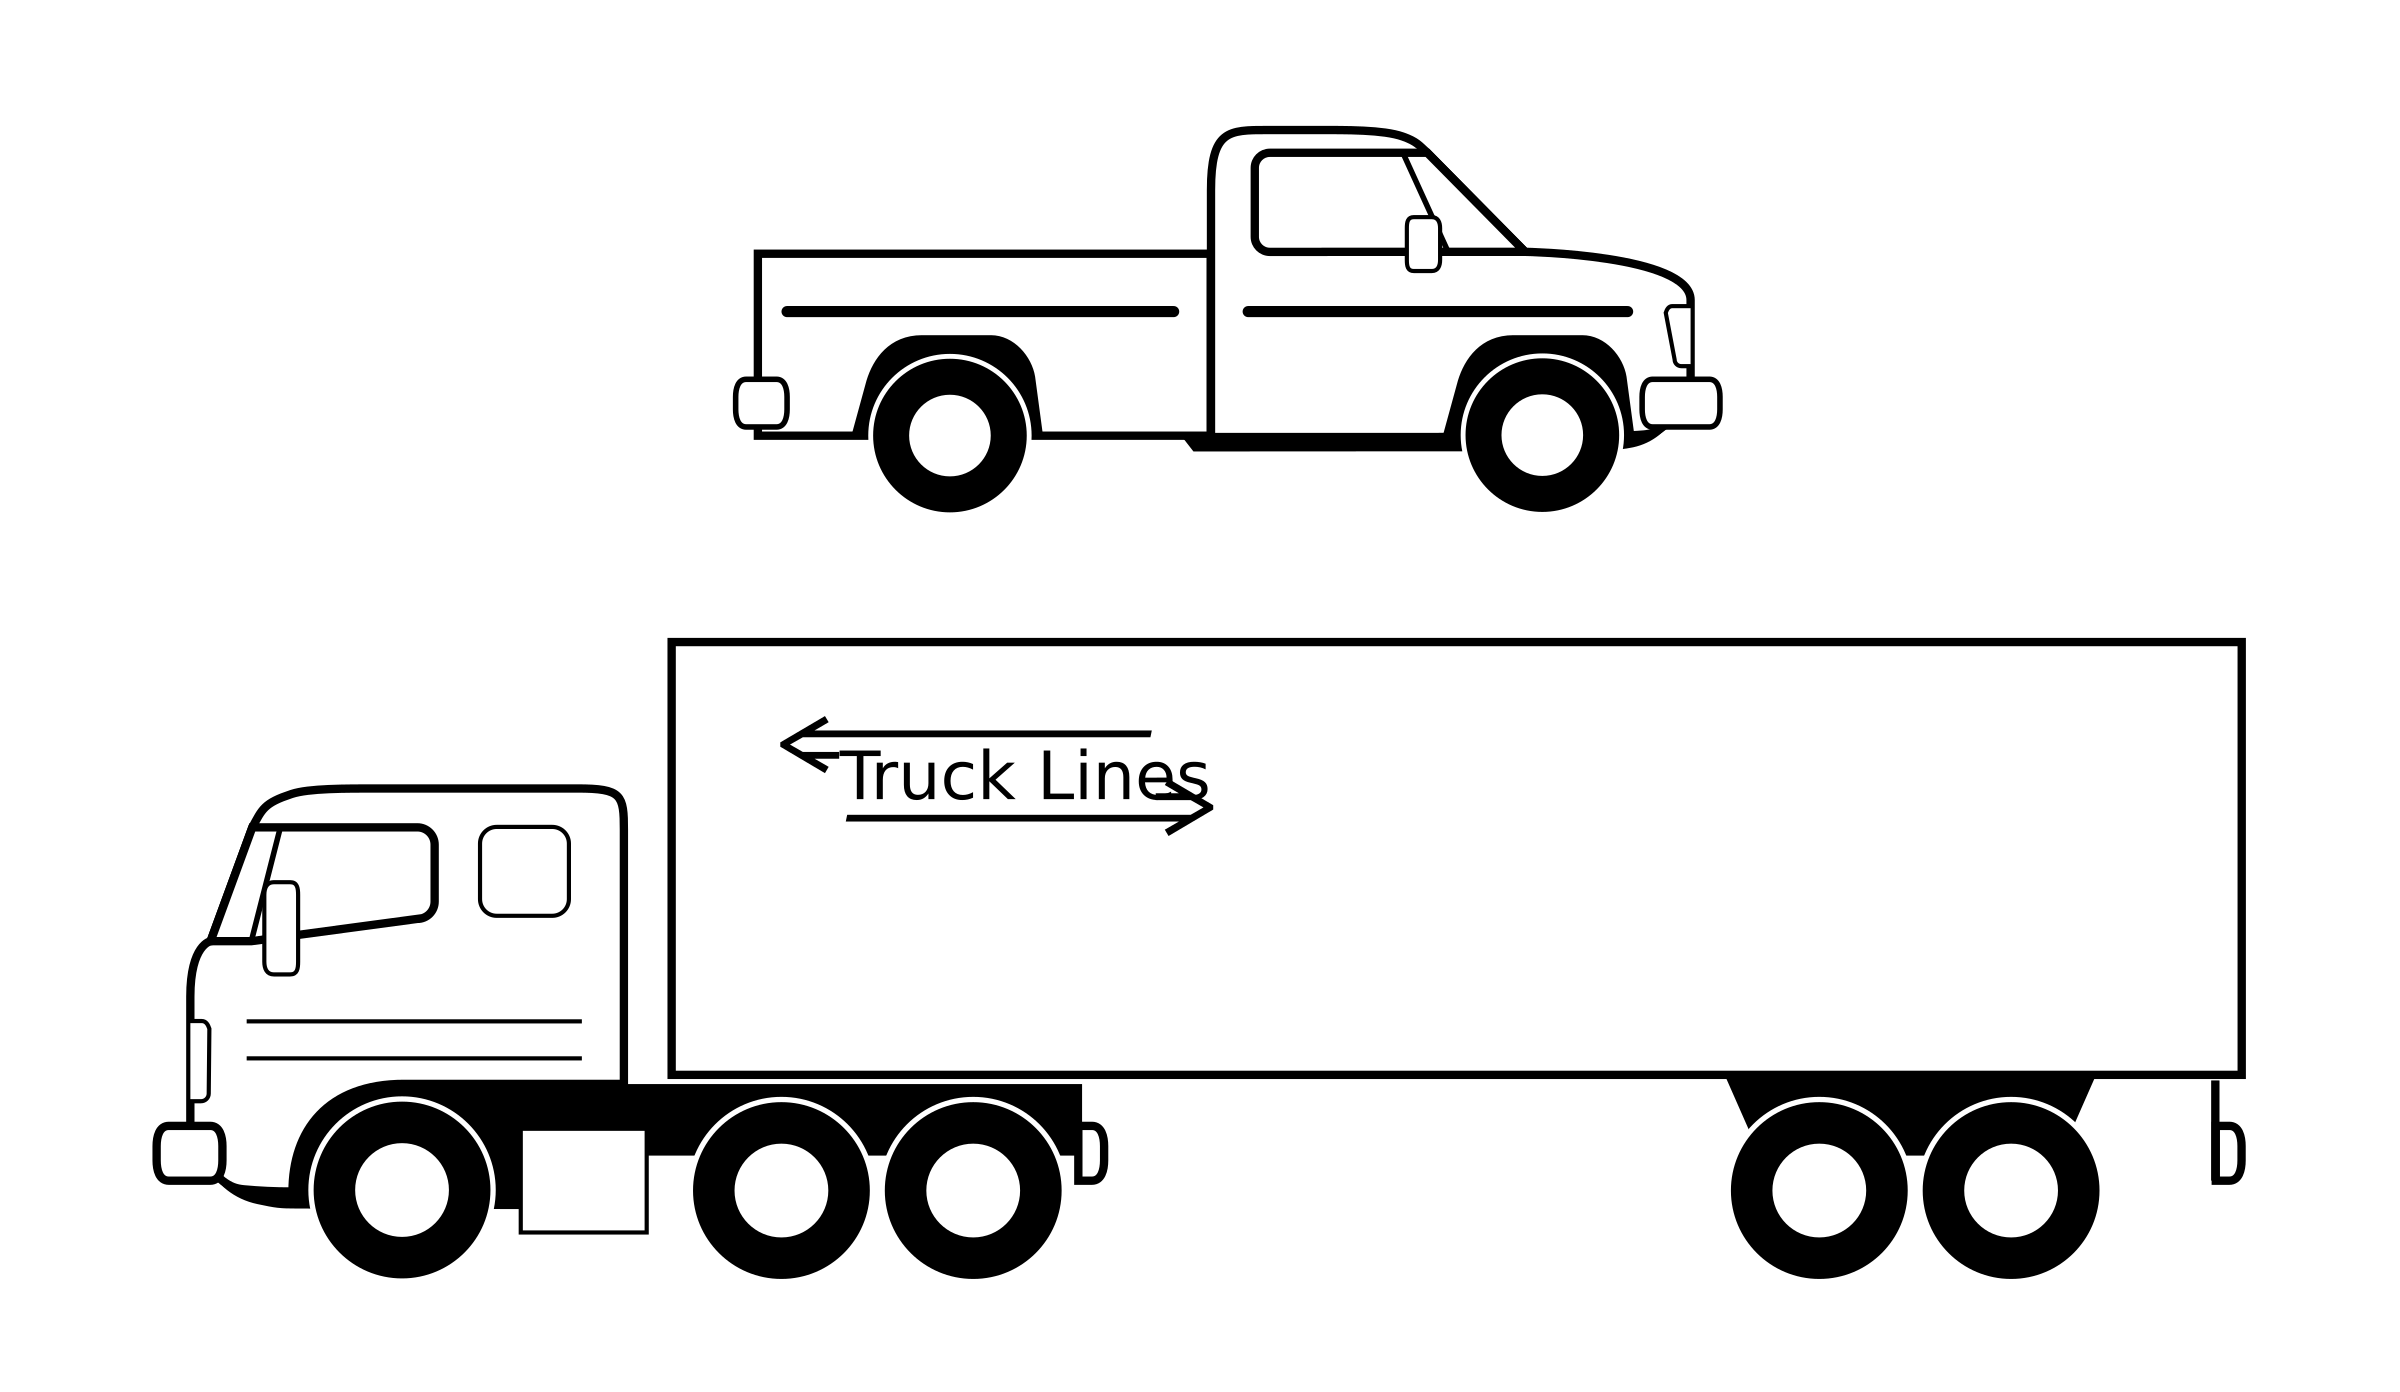 Pickup Truck Clipart Black And White Truck Clipart, Truck Black.